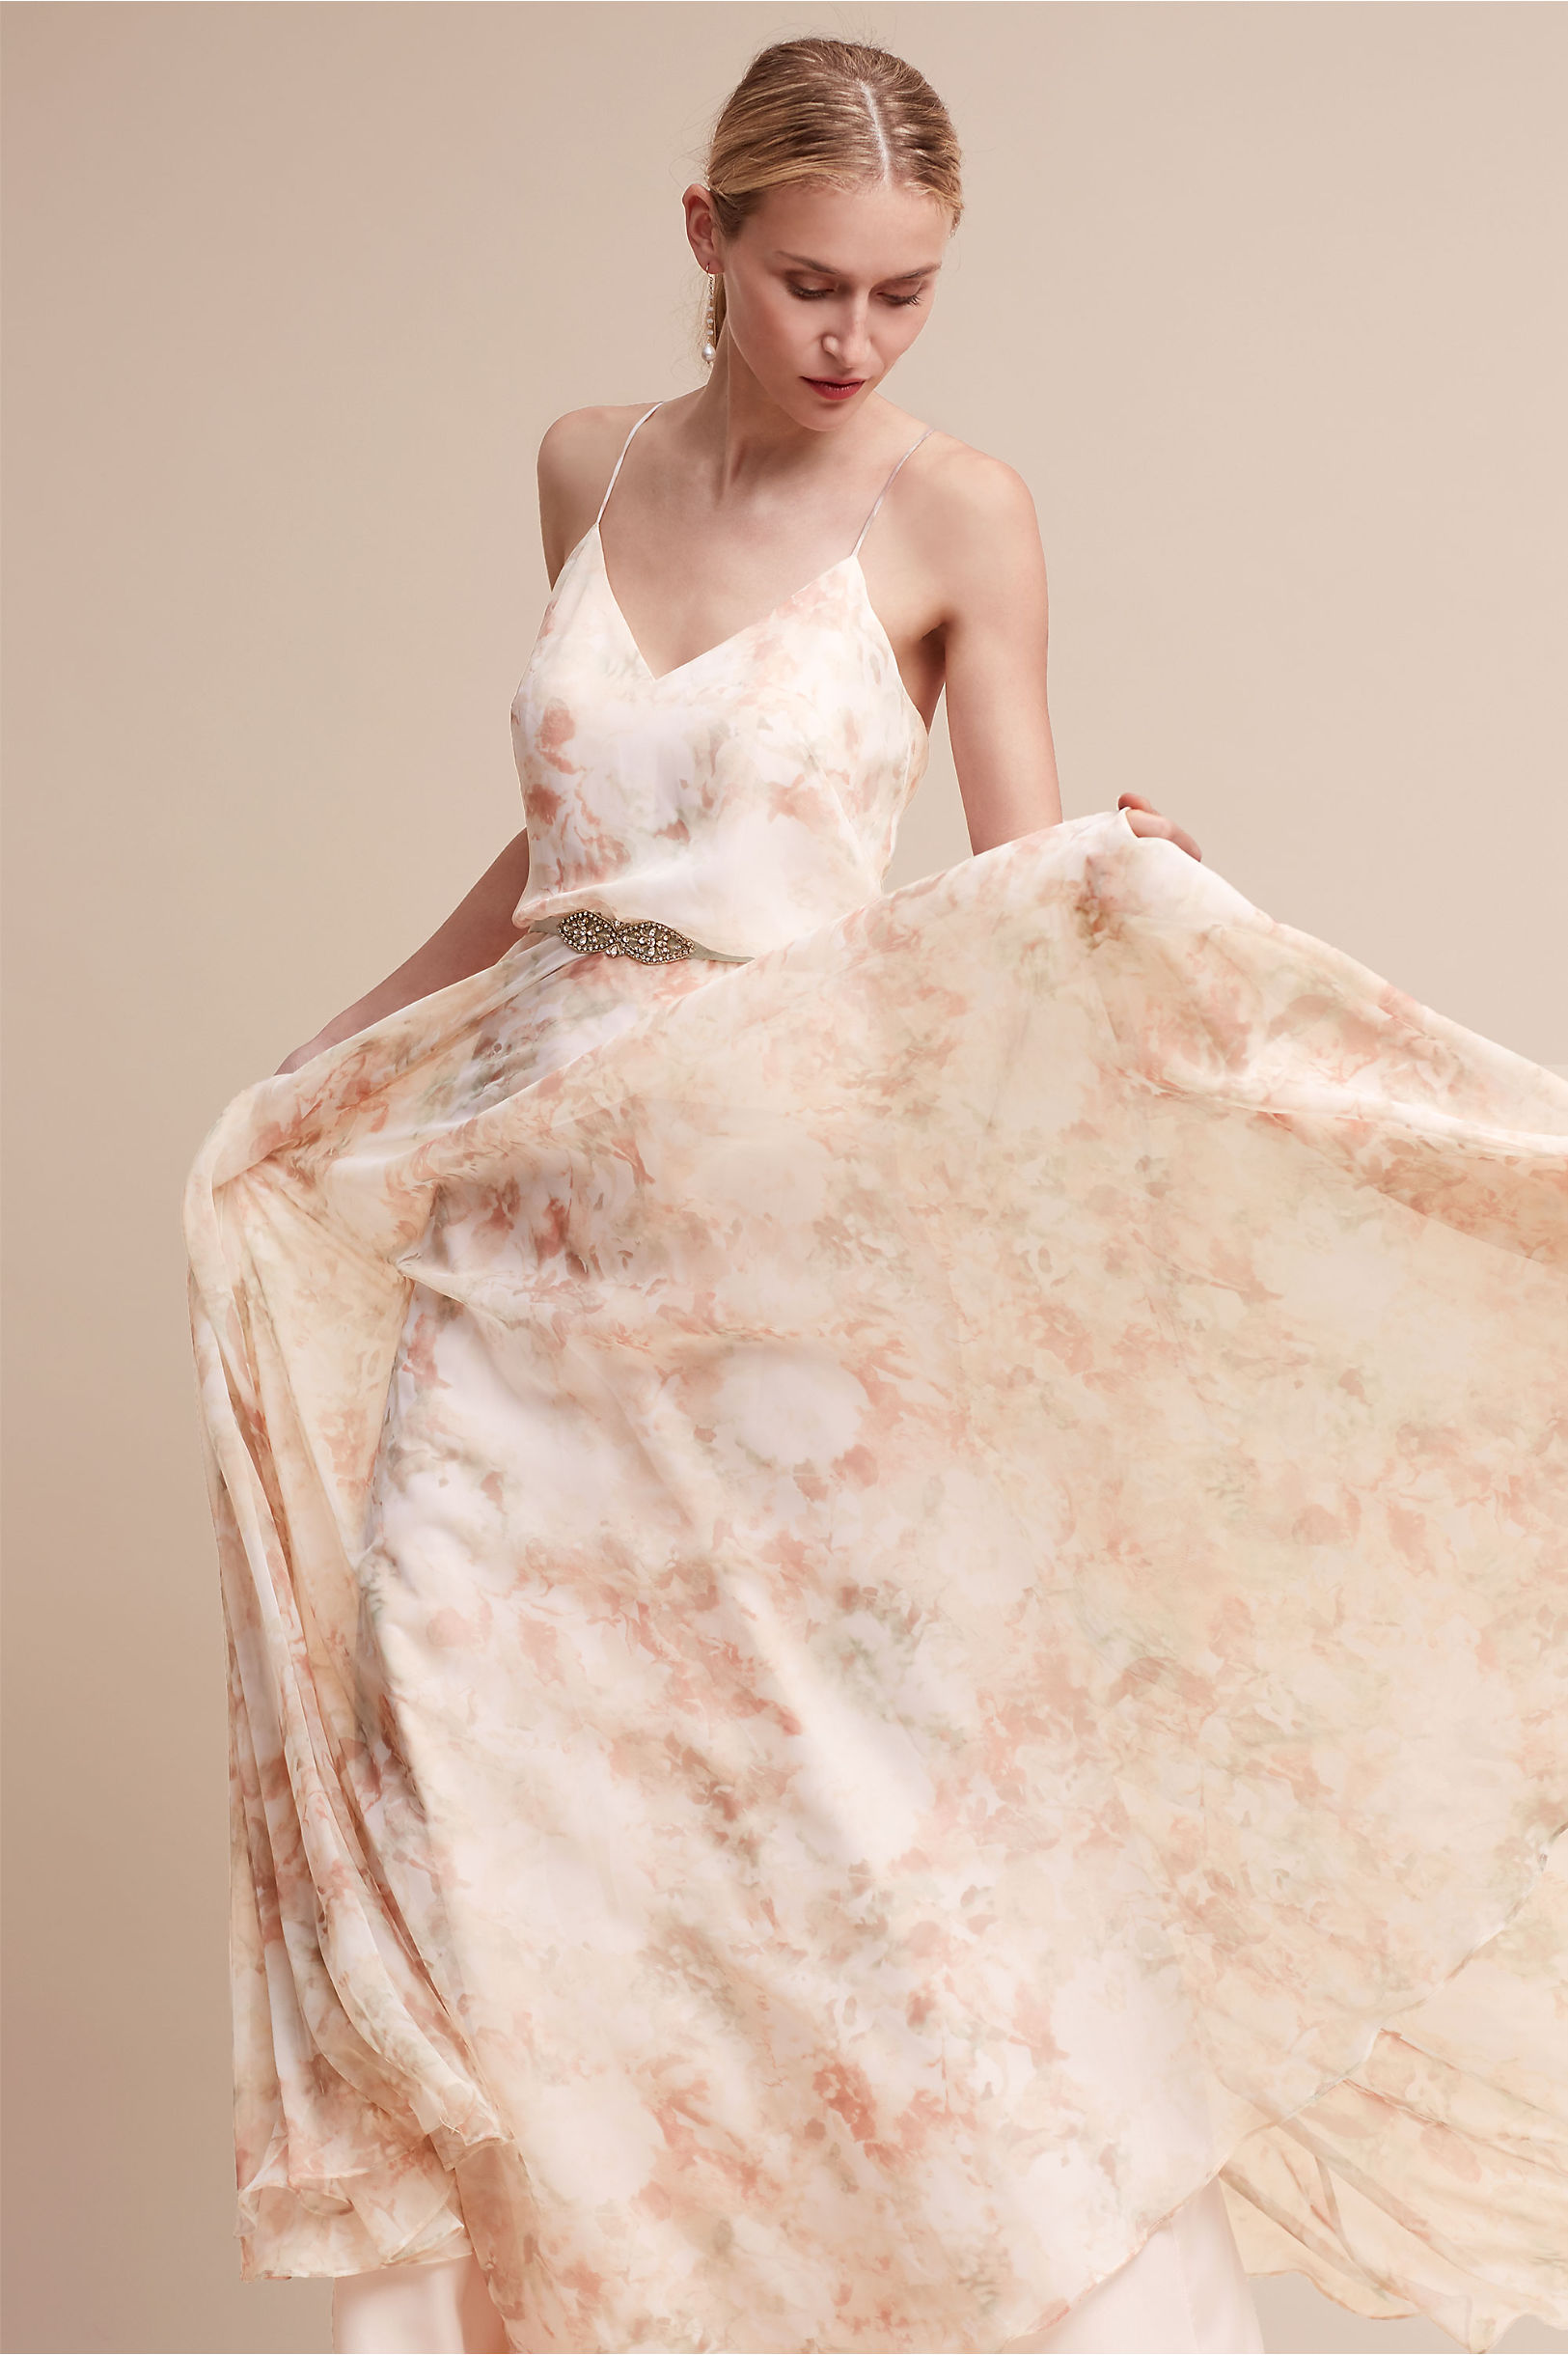 Inesse dress blush multi in sale bhldn blush multi inesse dress bhldn ombrellifo Image collections